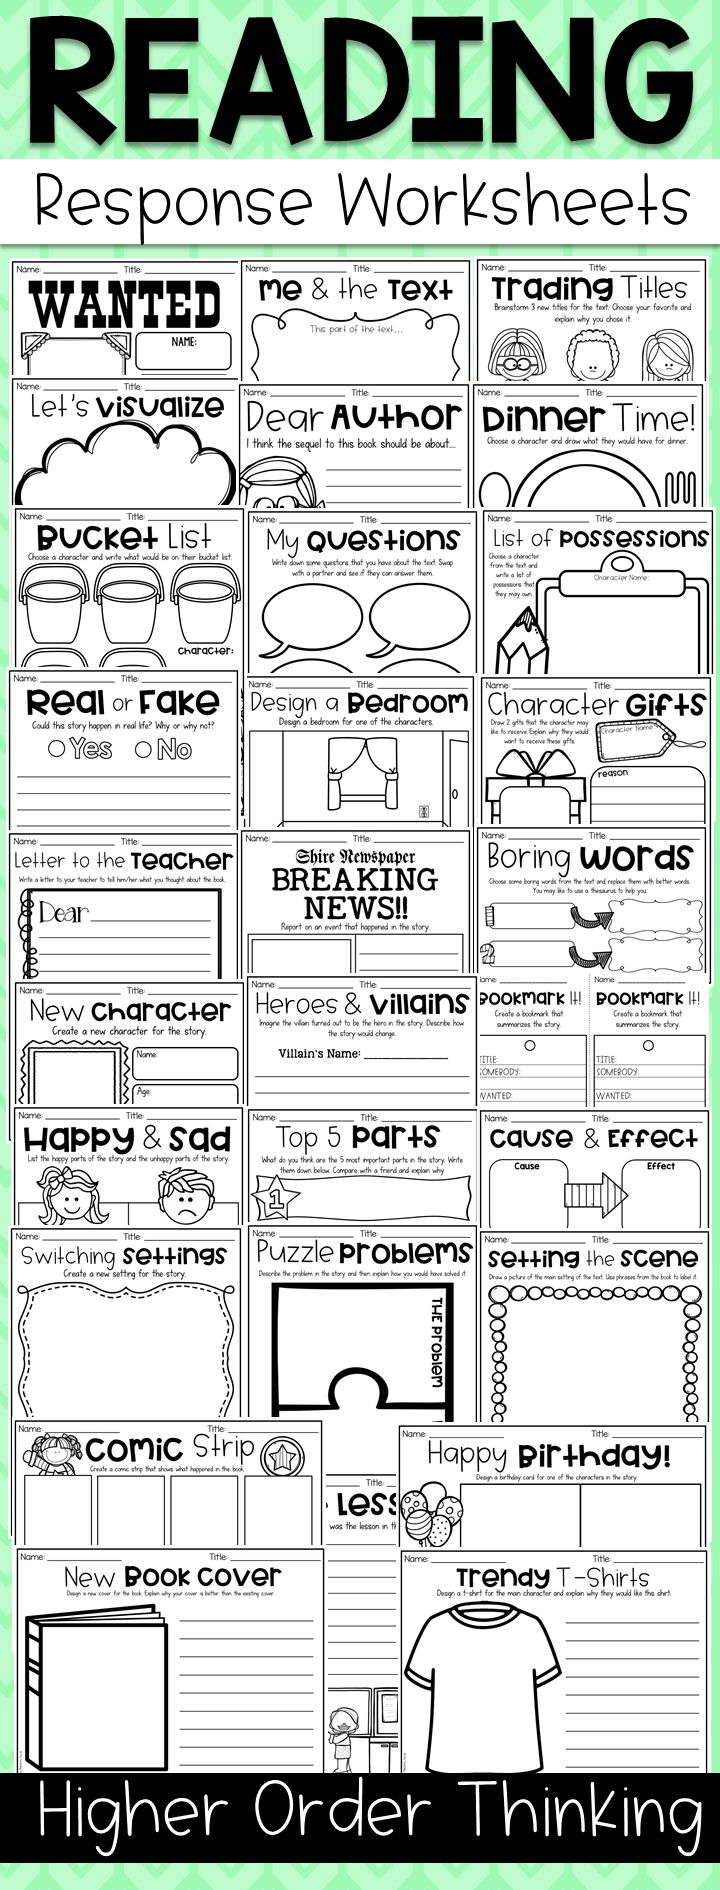 Higher order thinking reading response worksheets. Get your kiddos' creativity flowing with this HOTS Reading Response Worksheet Pack. It is jam-packed with engaging and unique reading response activities which are designed to encourage students to use their higher order thinking skills while connecting with the text. All of the printables go with ANY fictional text which means they can be used all year round.